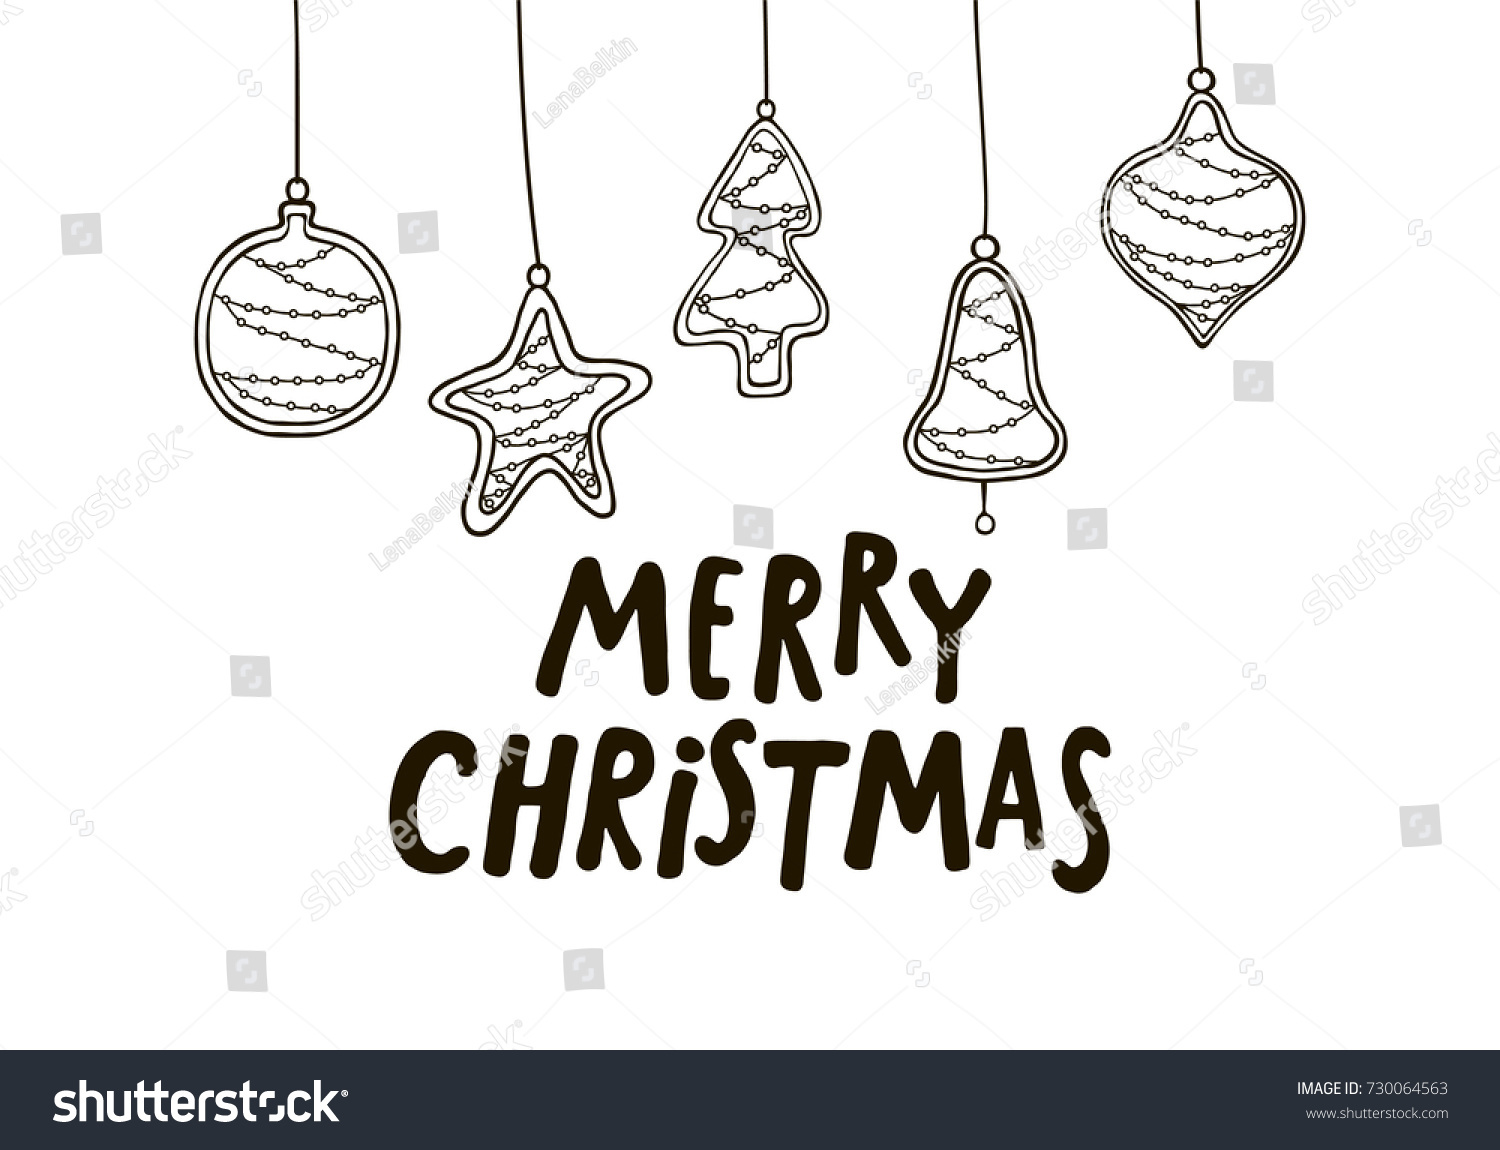 Merry Christmas Black White Greeting Card Stock Vector Royalty Free